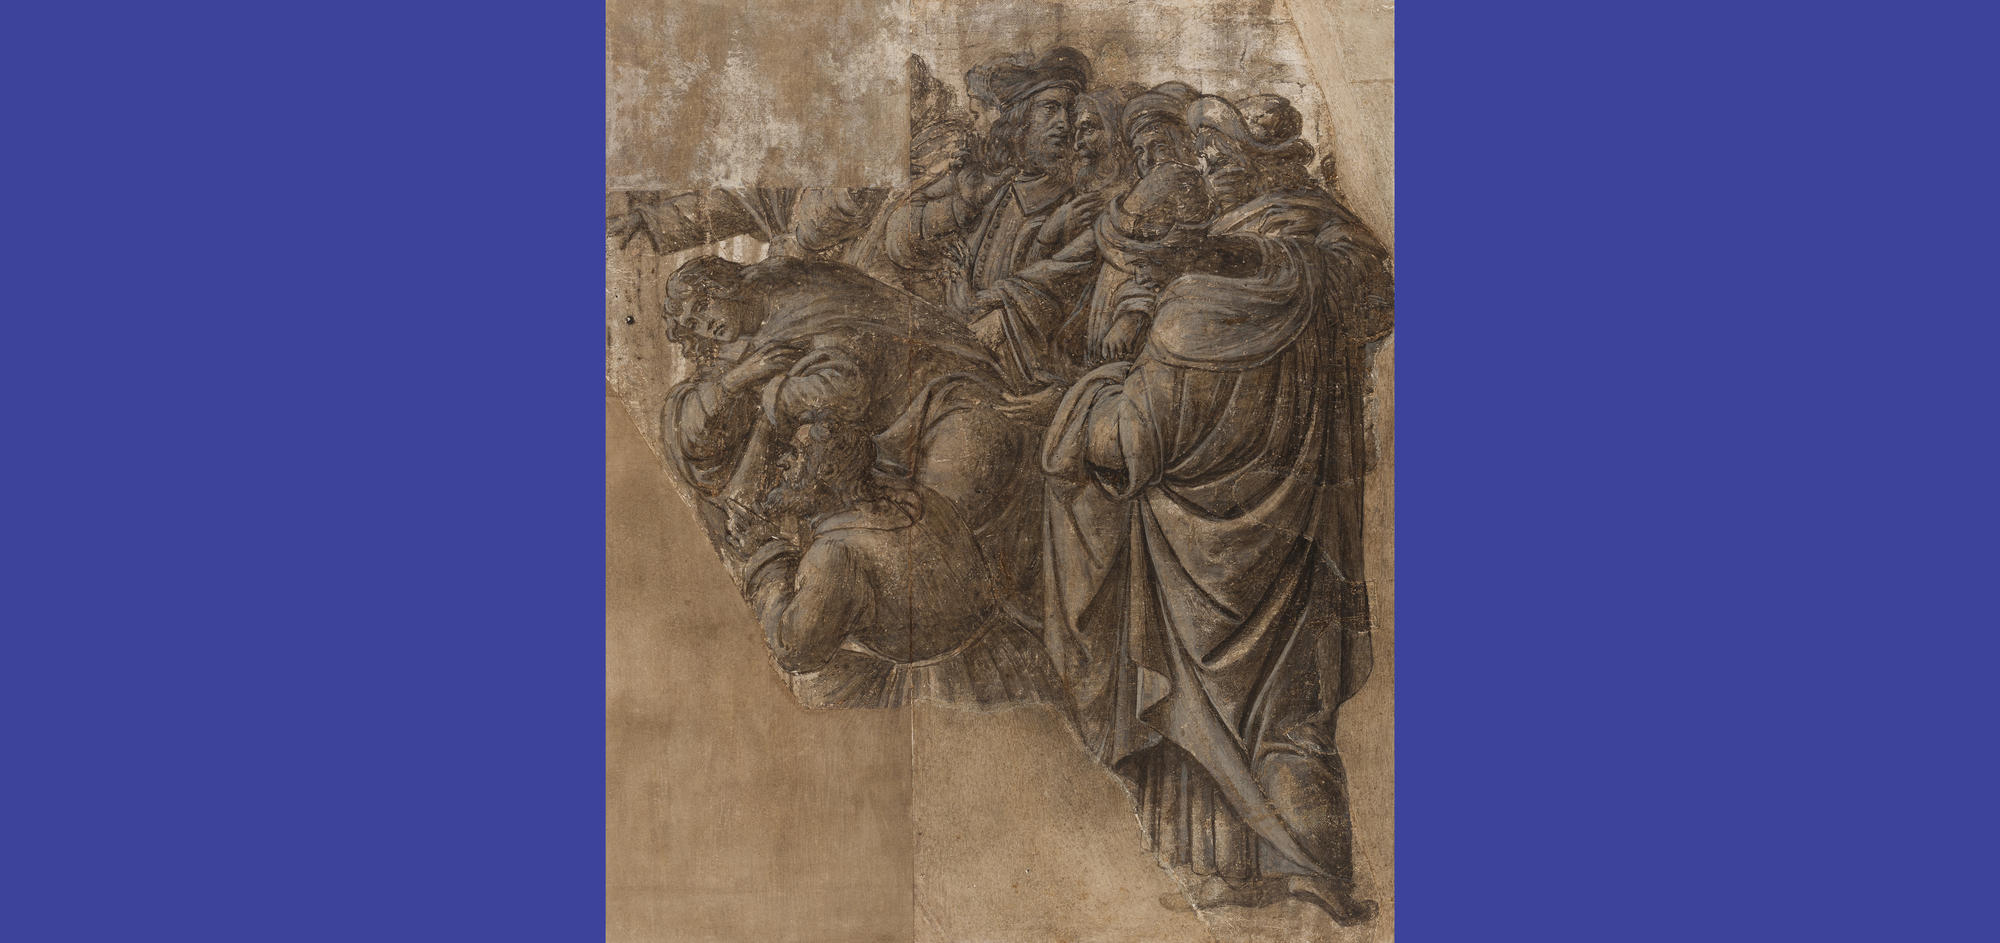 Sandro Botticelli (Italian, 1444 or 1445-1510), Men Conversing and Two Magi (two fragments of The Adoration of the Magi), about 1500. Brush and brown egg tempera, heightened with white, over charcoal or chalk on prepared linen, 44.2 x 37.1 cm. The Fitzwilliam Museum, Cambridge Ω The Fitzwilliam Museum, Cambridge